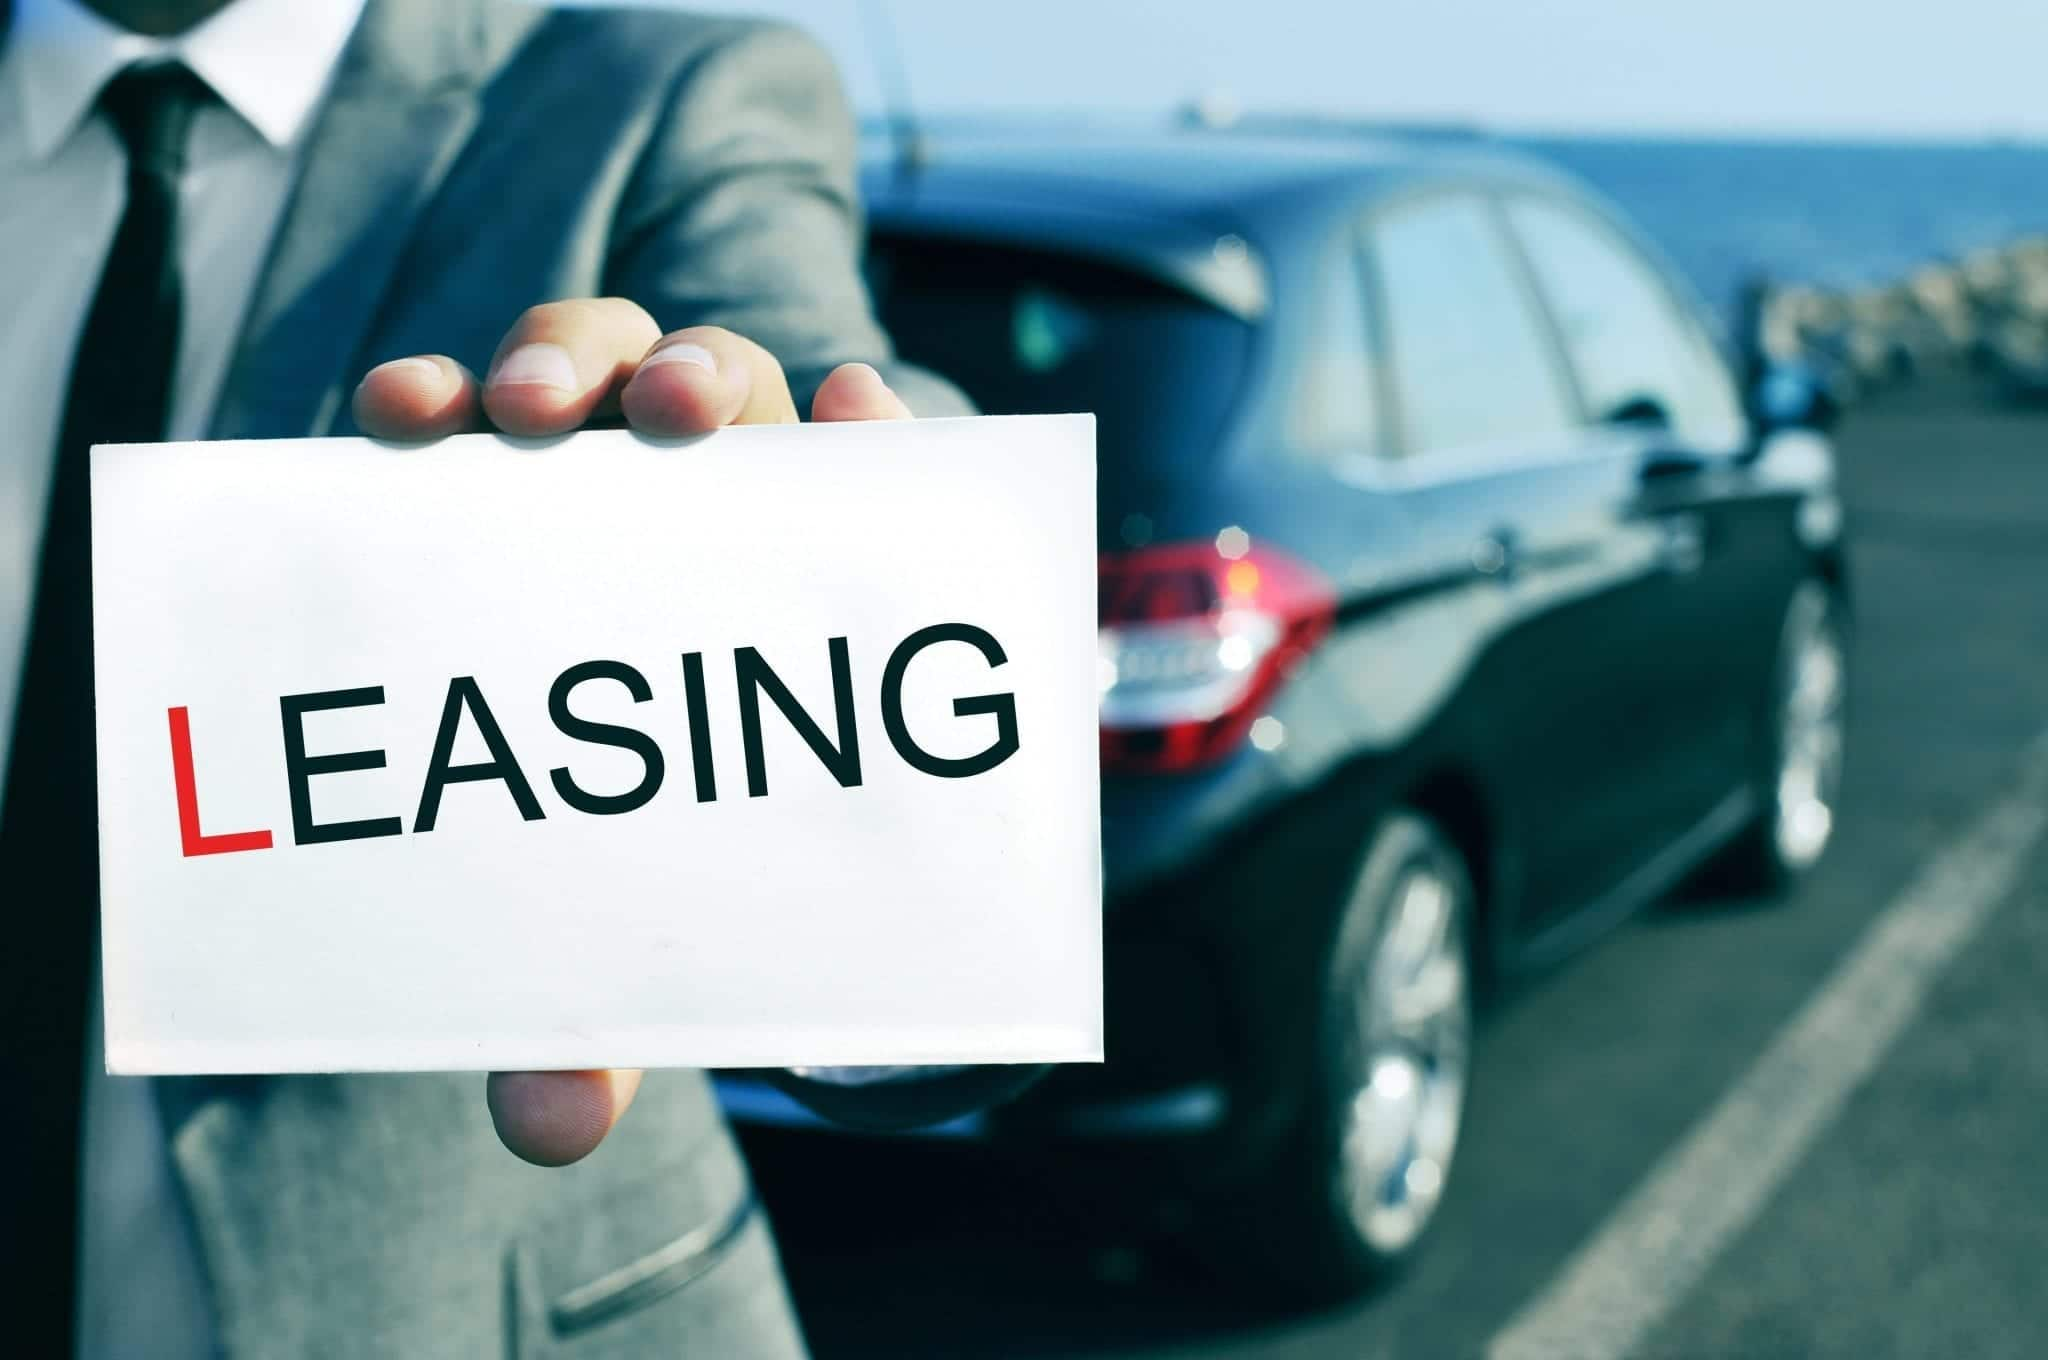 What fees come with leasing a car?